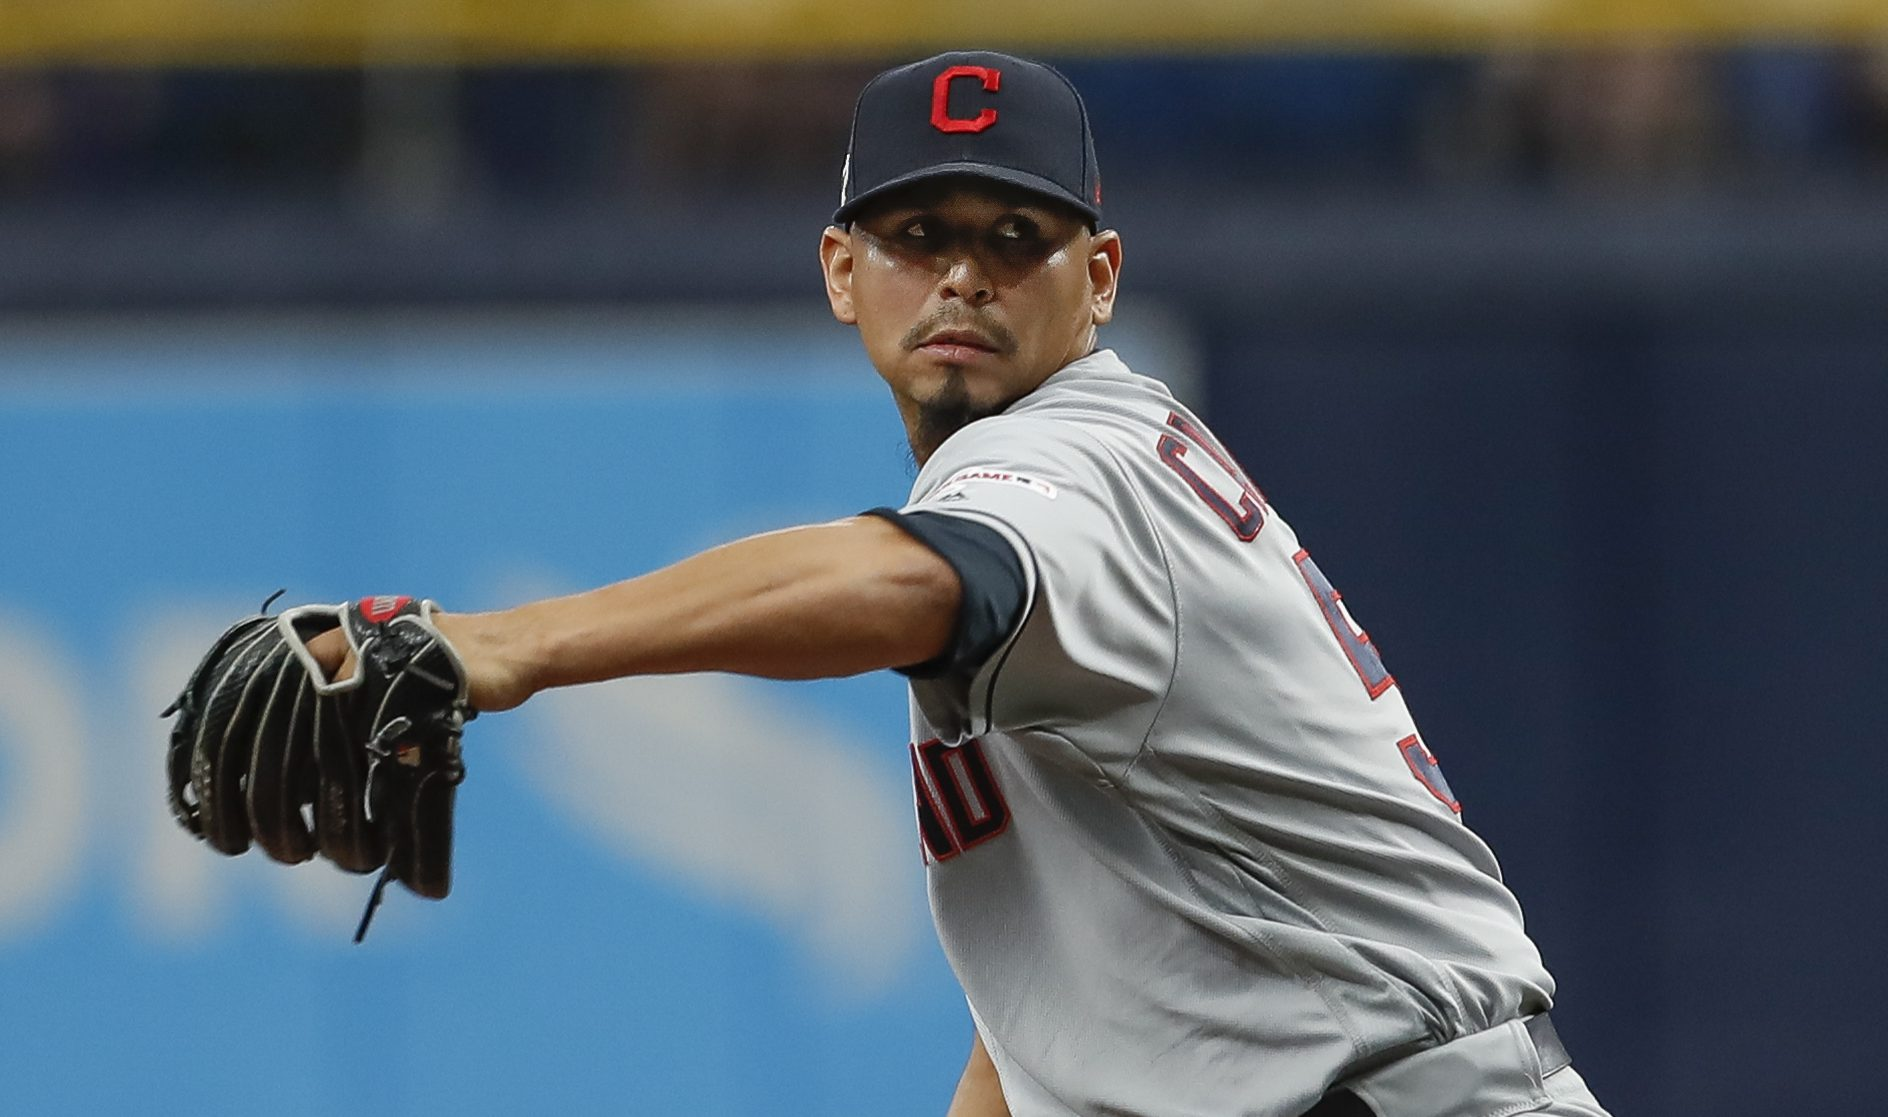 Carlos Carrasco pitches for the first time since his cancer diagnosis